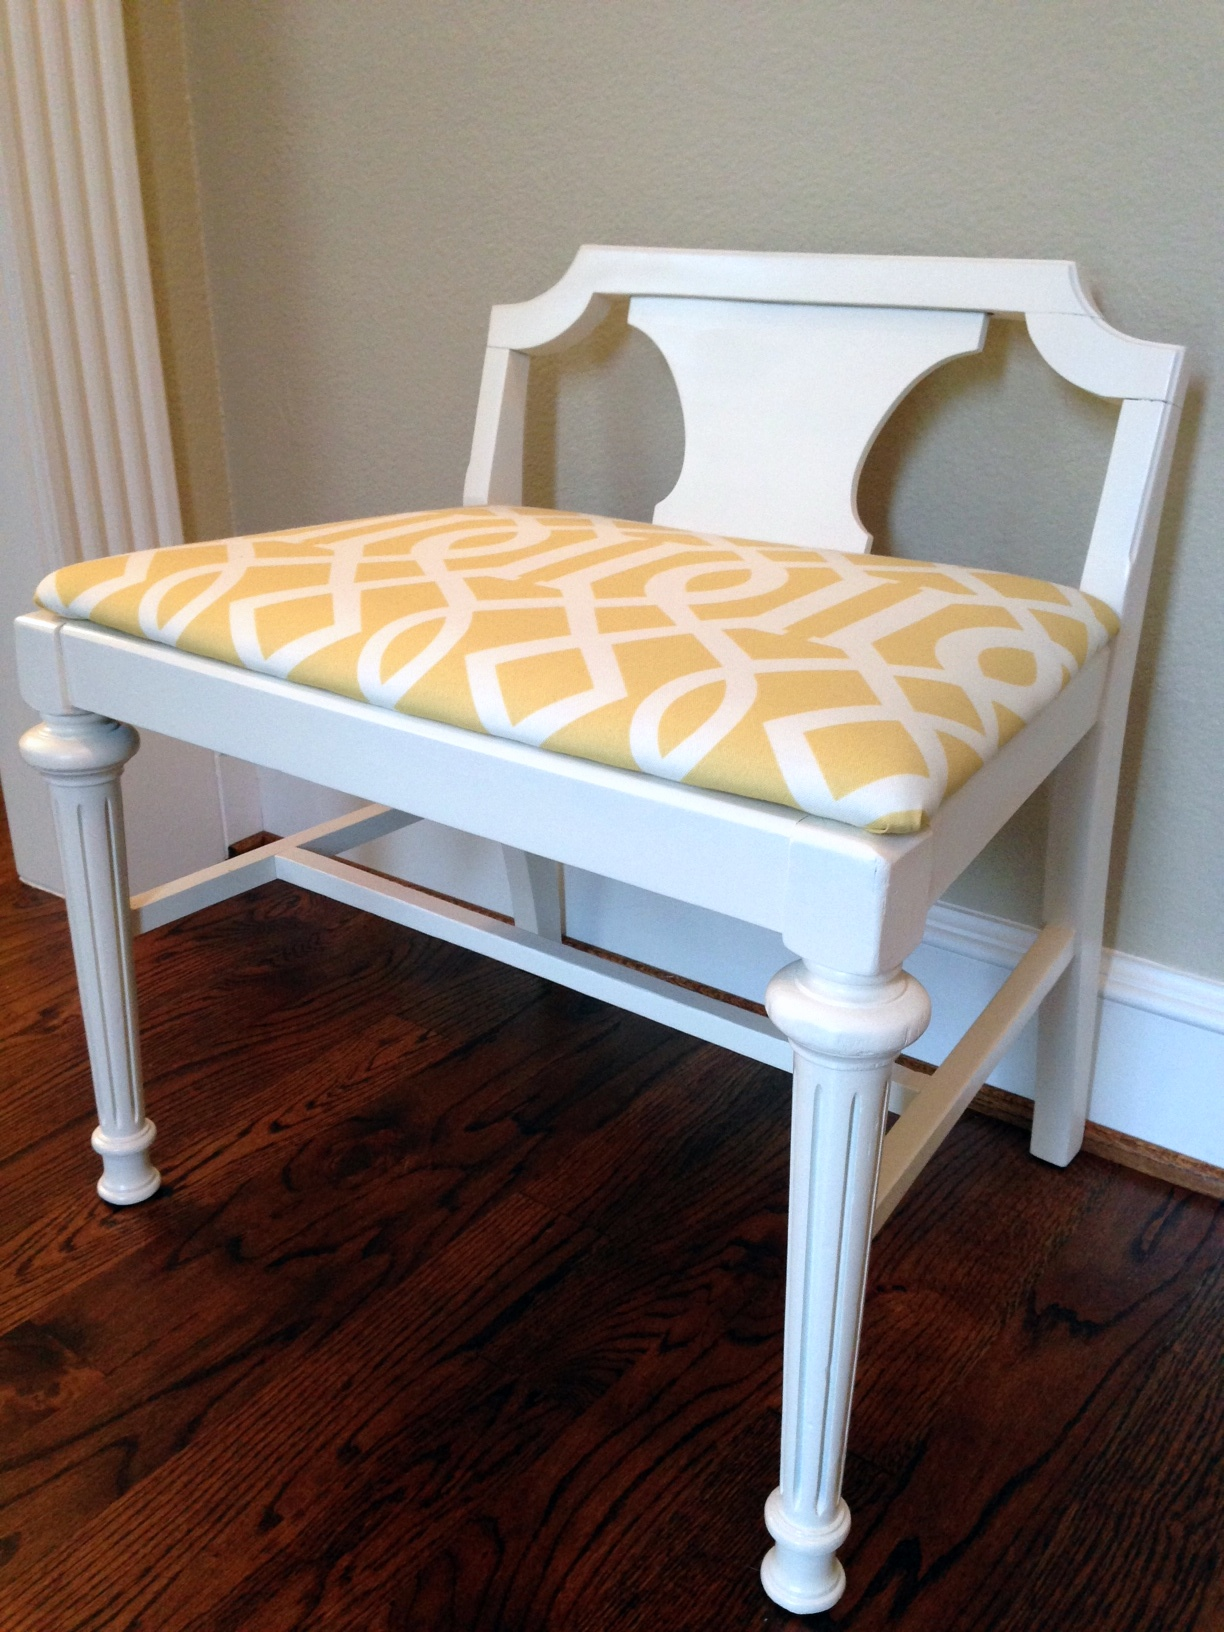 More Designs Of Vanity Bench Seat For Bedroom Vanity